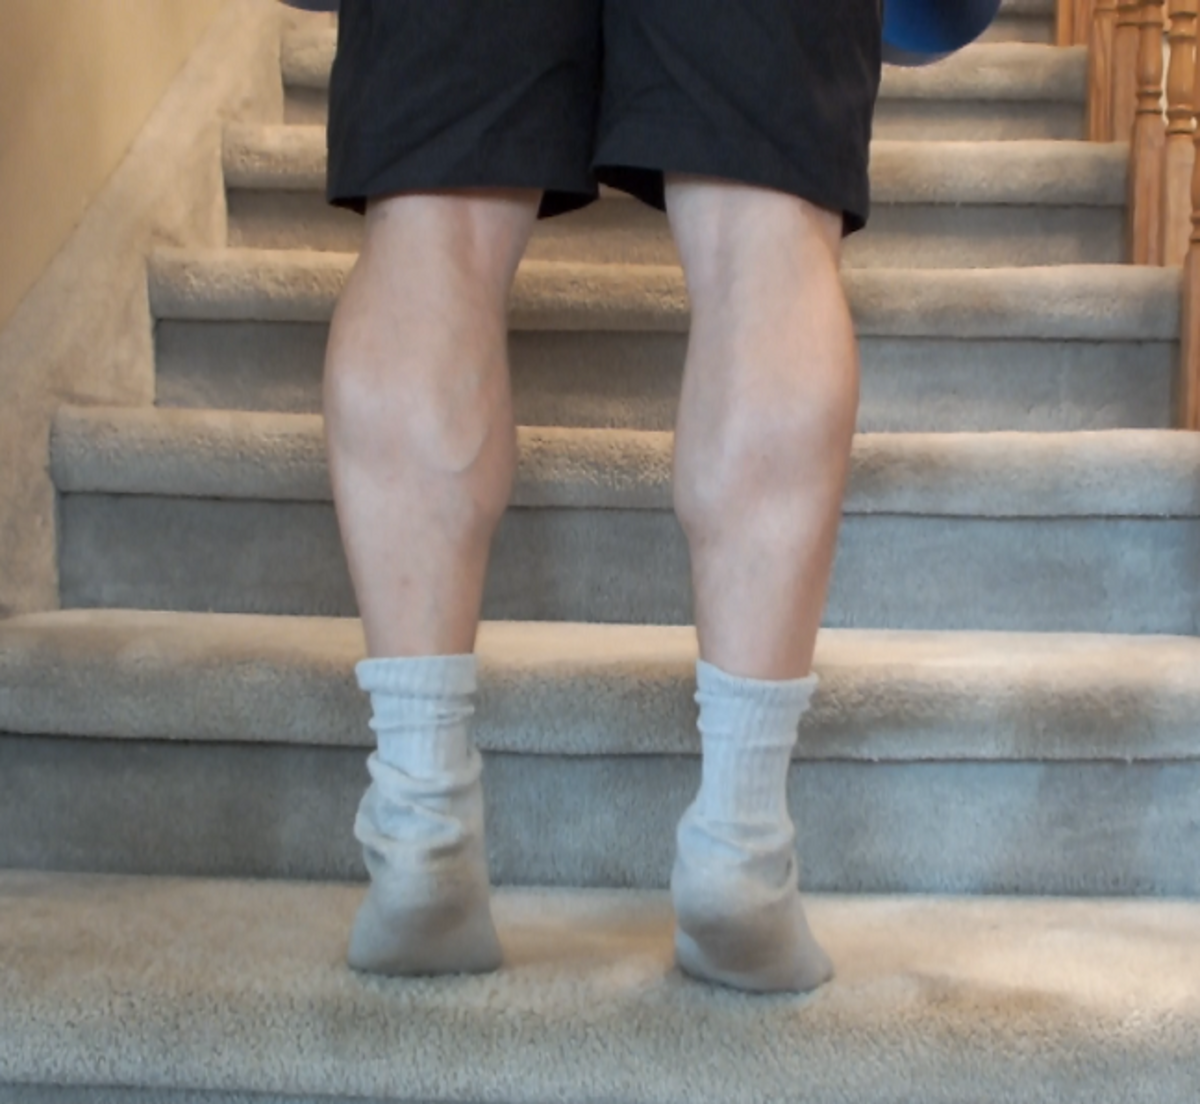 Large calf muscles from exercising.